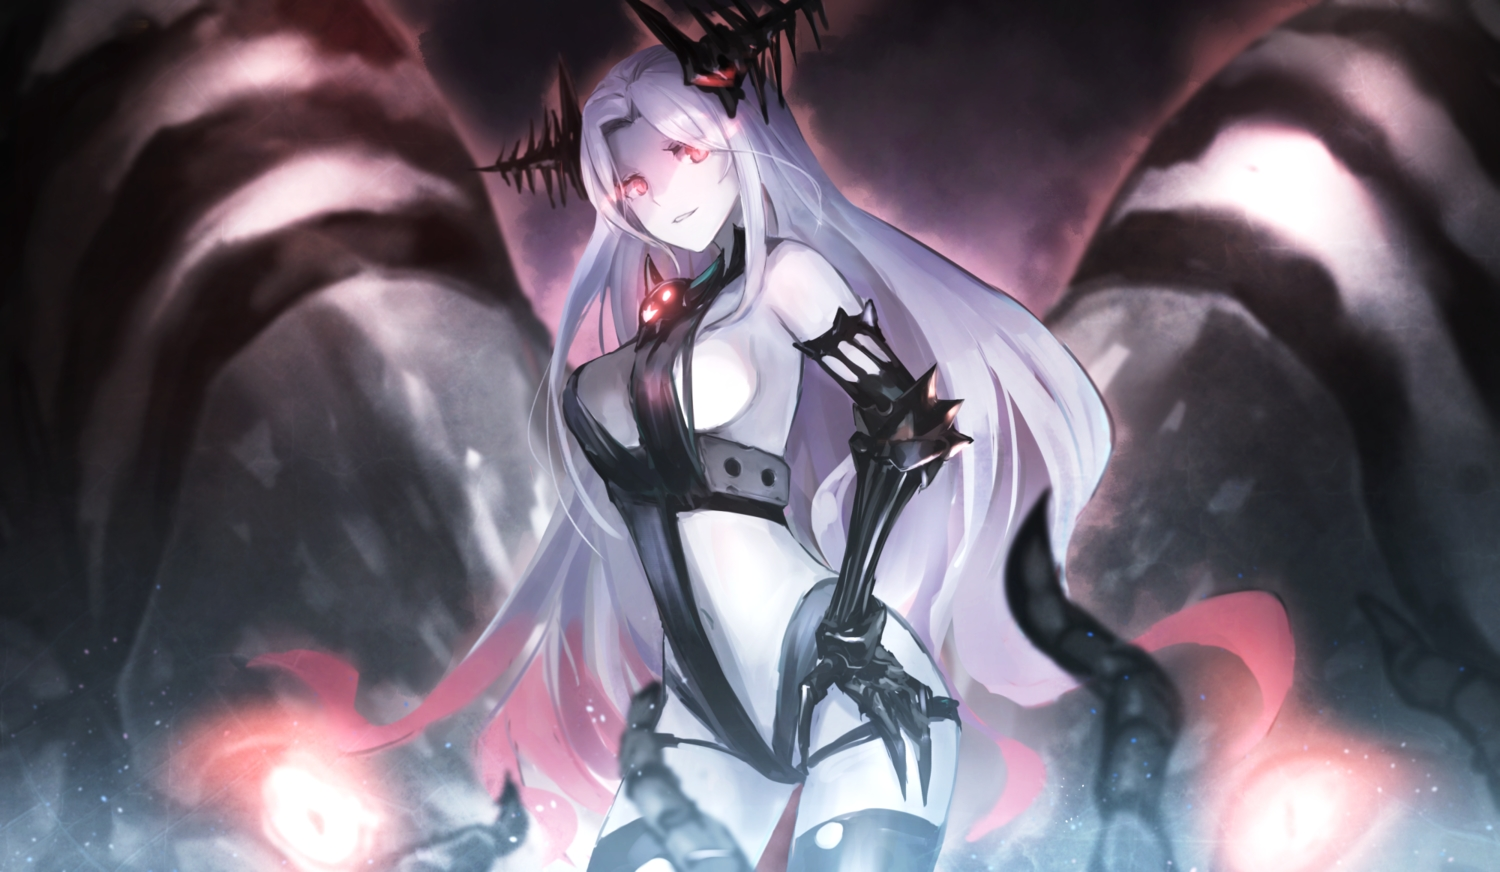 batavia_hime breasts elbow_gloves gloves kantai_collection long_hair pink_eyes thighhighs weasel_(close-to-the-edge) white_hair